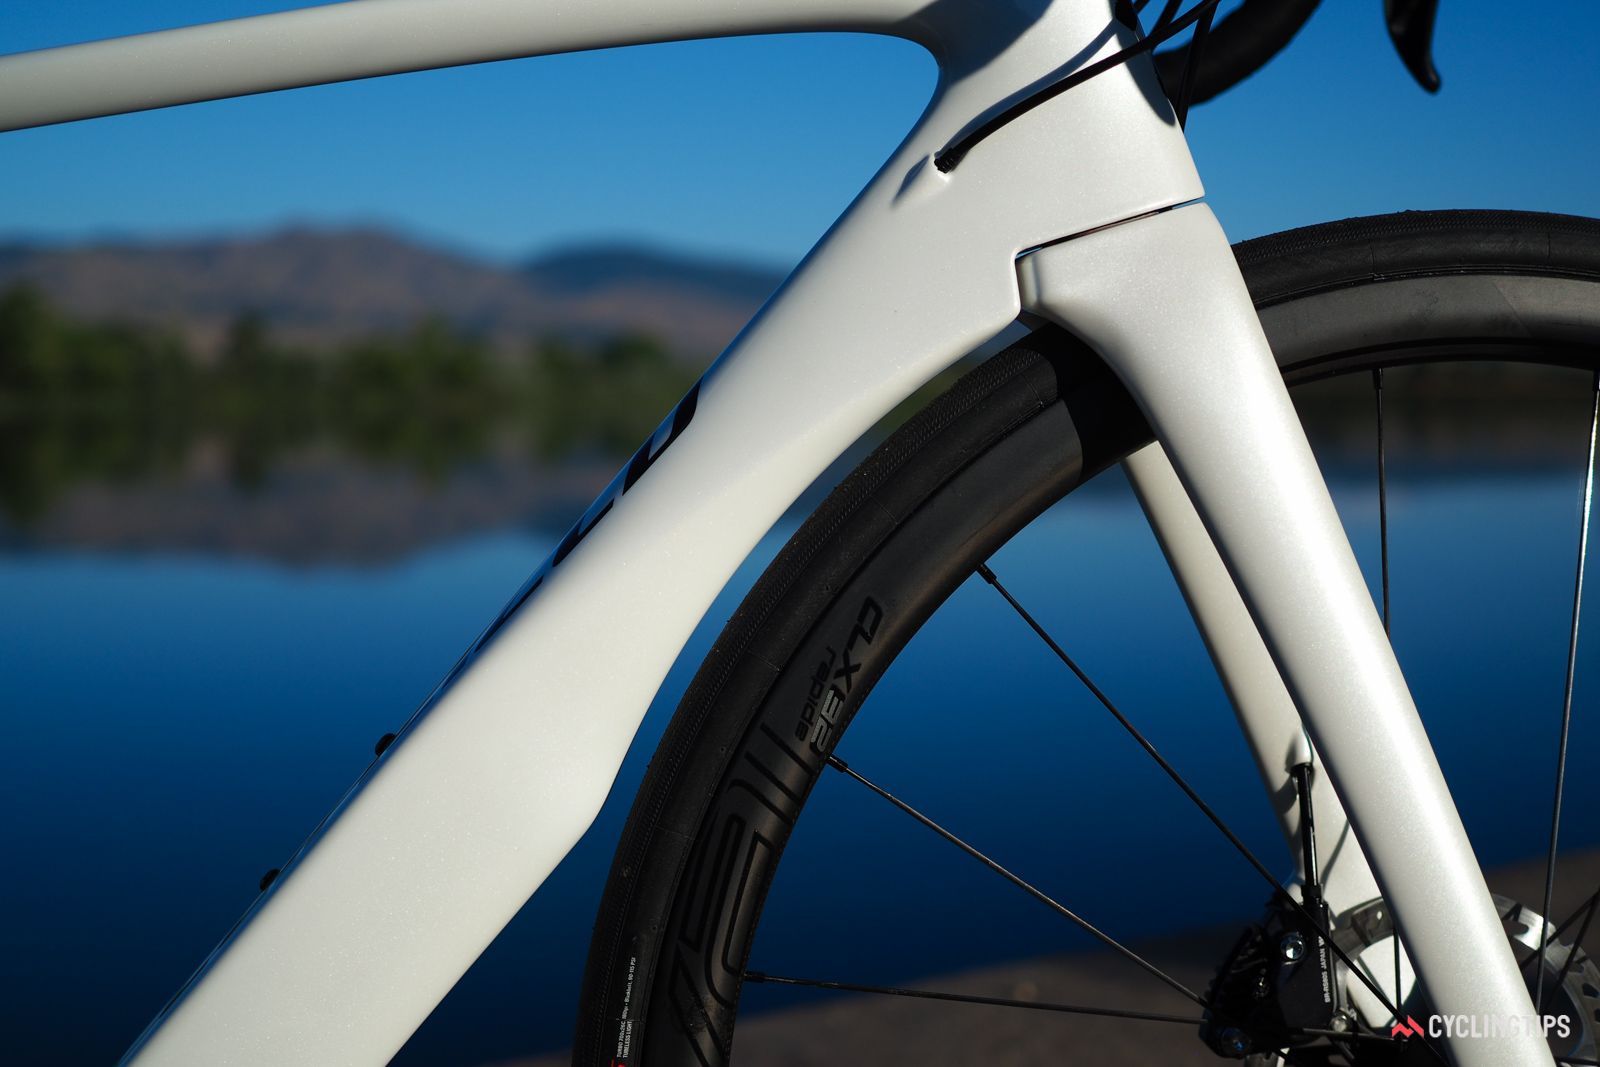 Specialized claims the aerodynamics of this area are actually better than on the rim brake version. Credit goes to the narrower fork crown area.